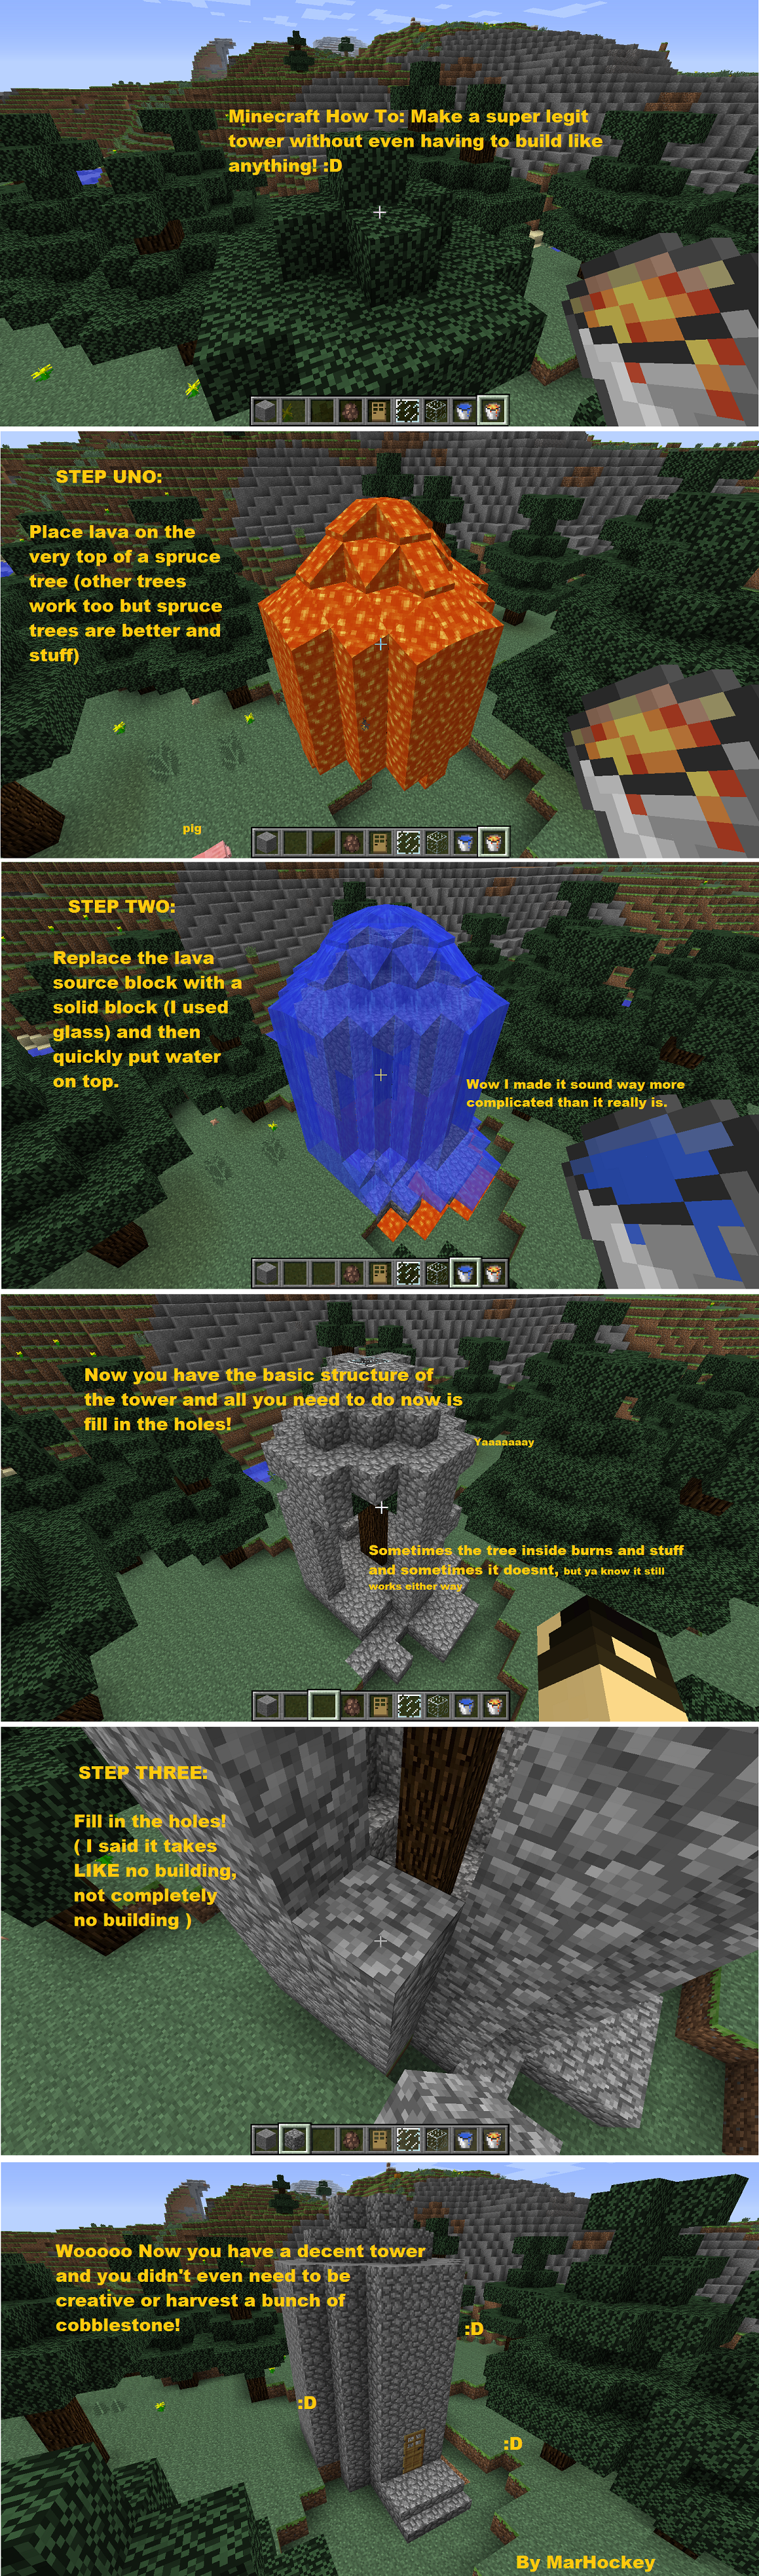 Easy Way To Build A Tower In Minecraft Minecraft Pinterest - Spiele in minecraft bauen